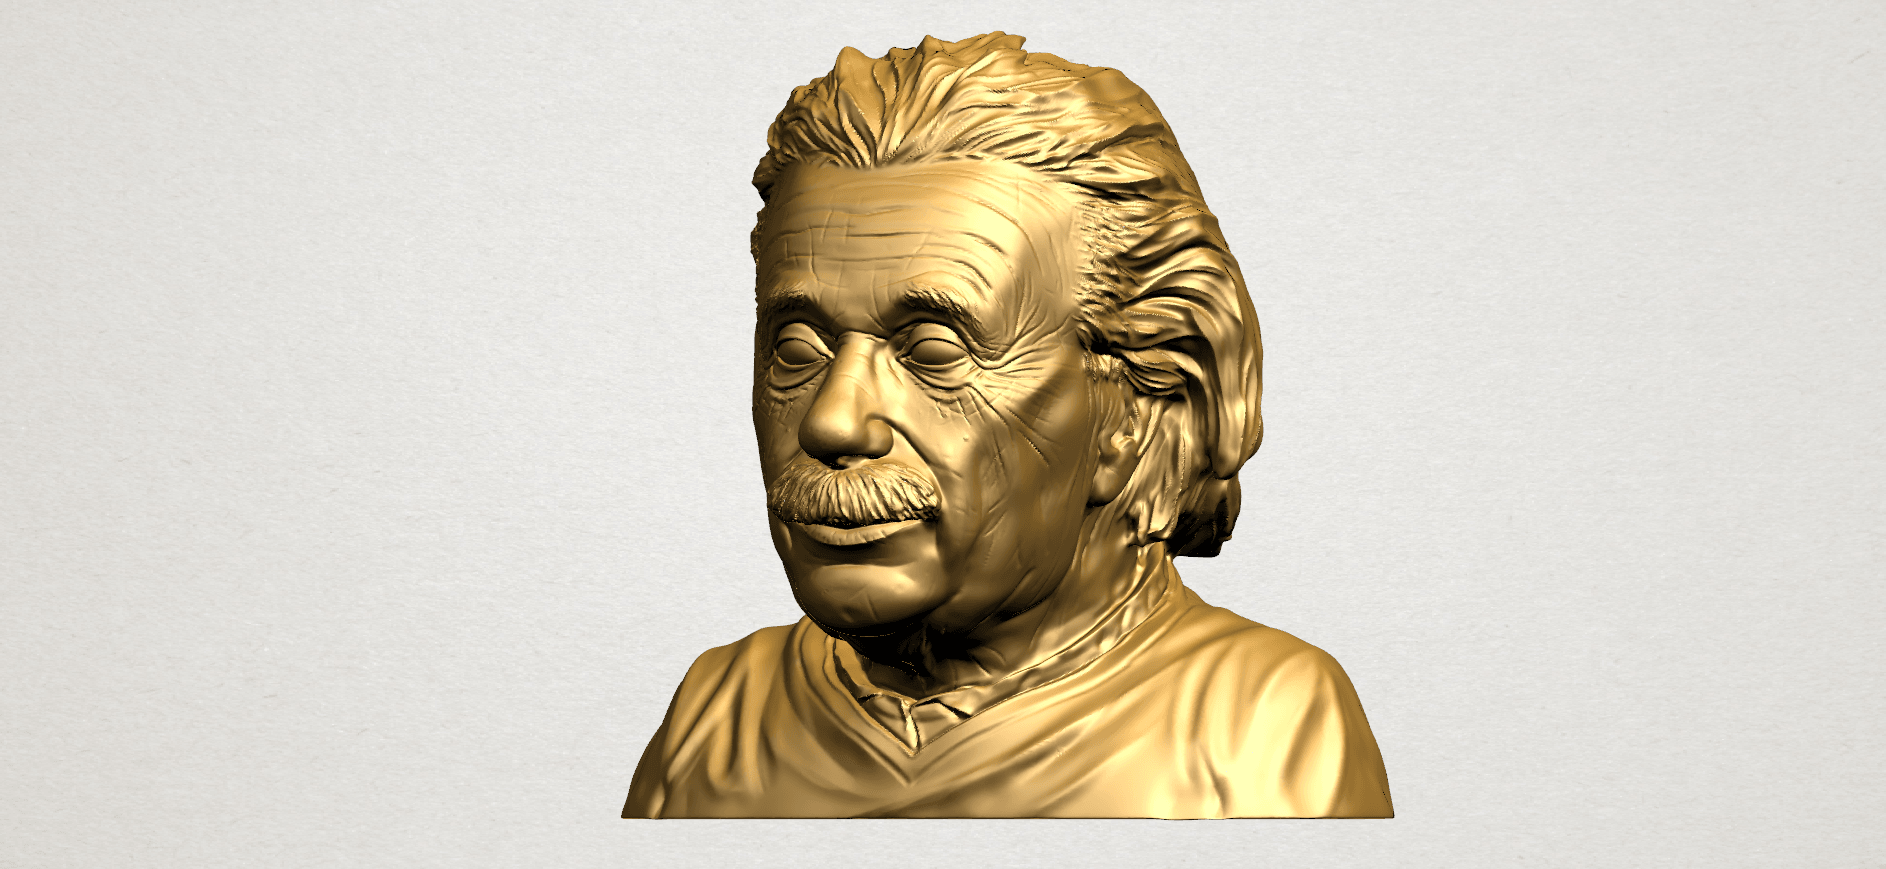 Einstein B02.png Download free STL file Einstein • 3D printer template, GeorgesNikkei